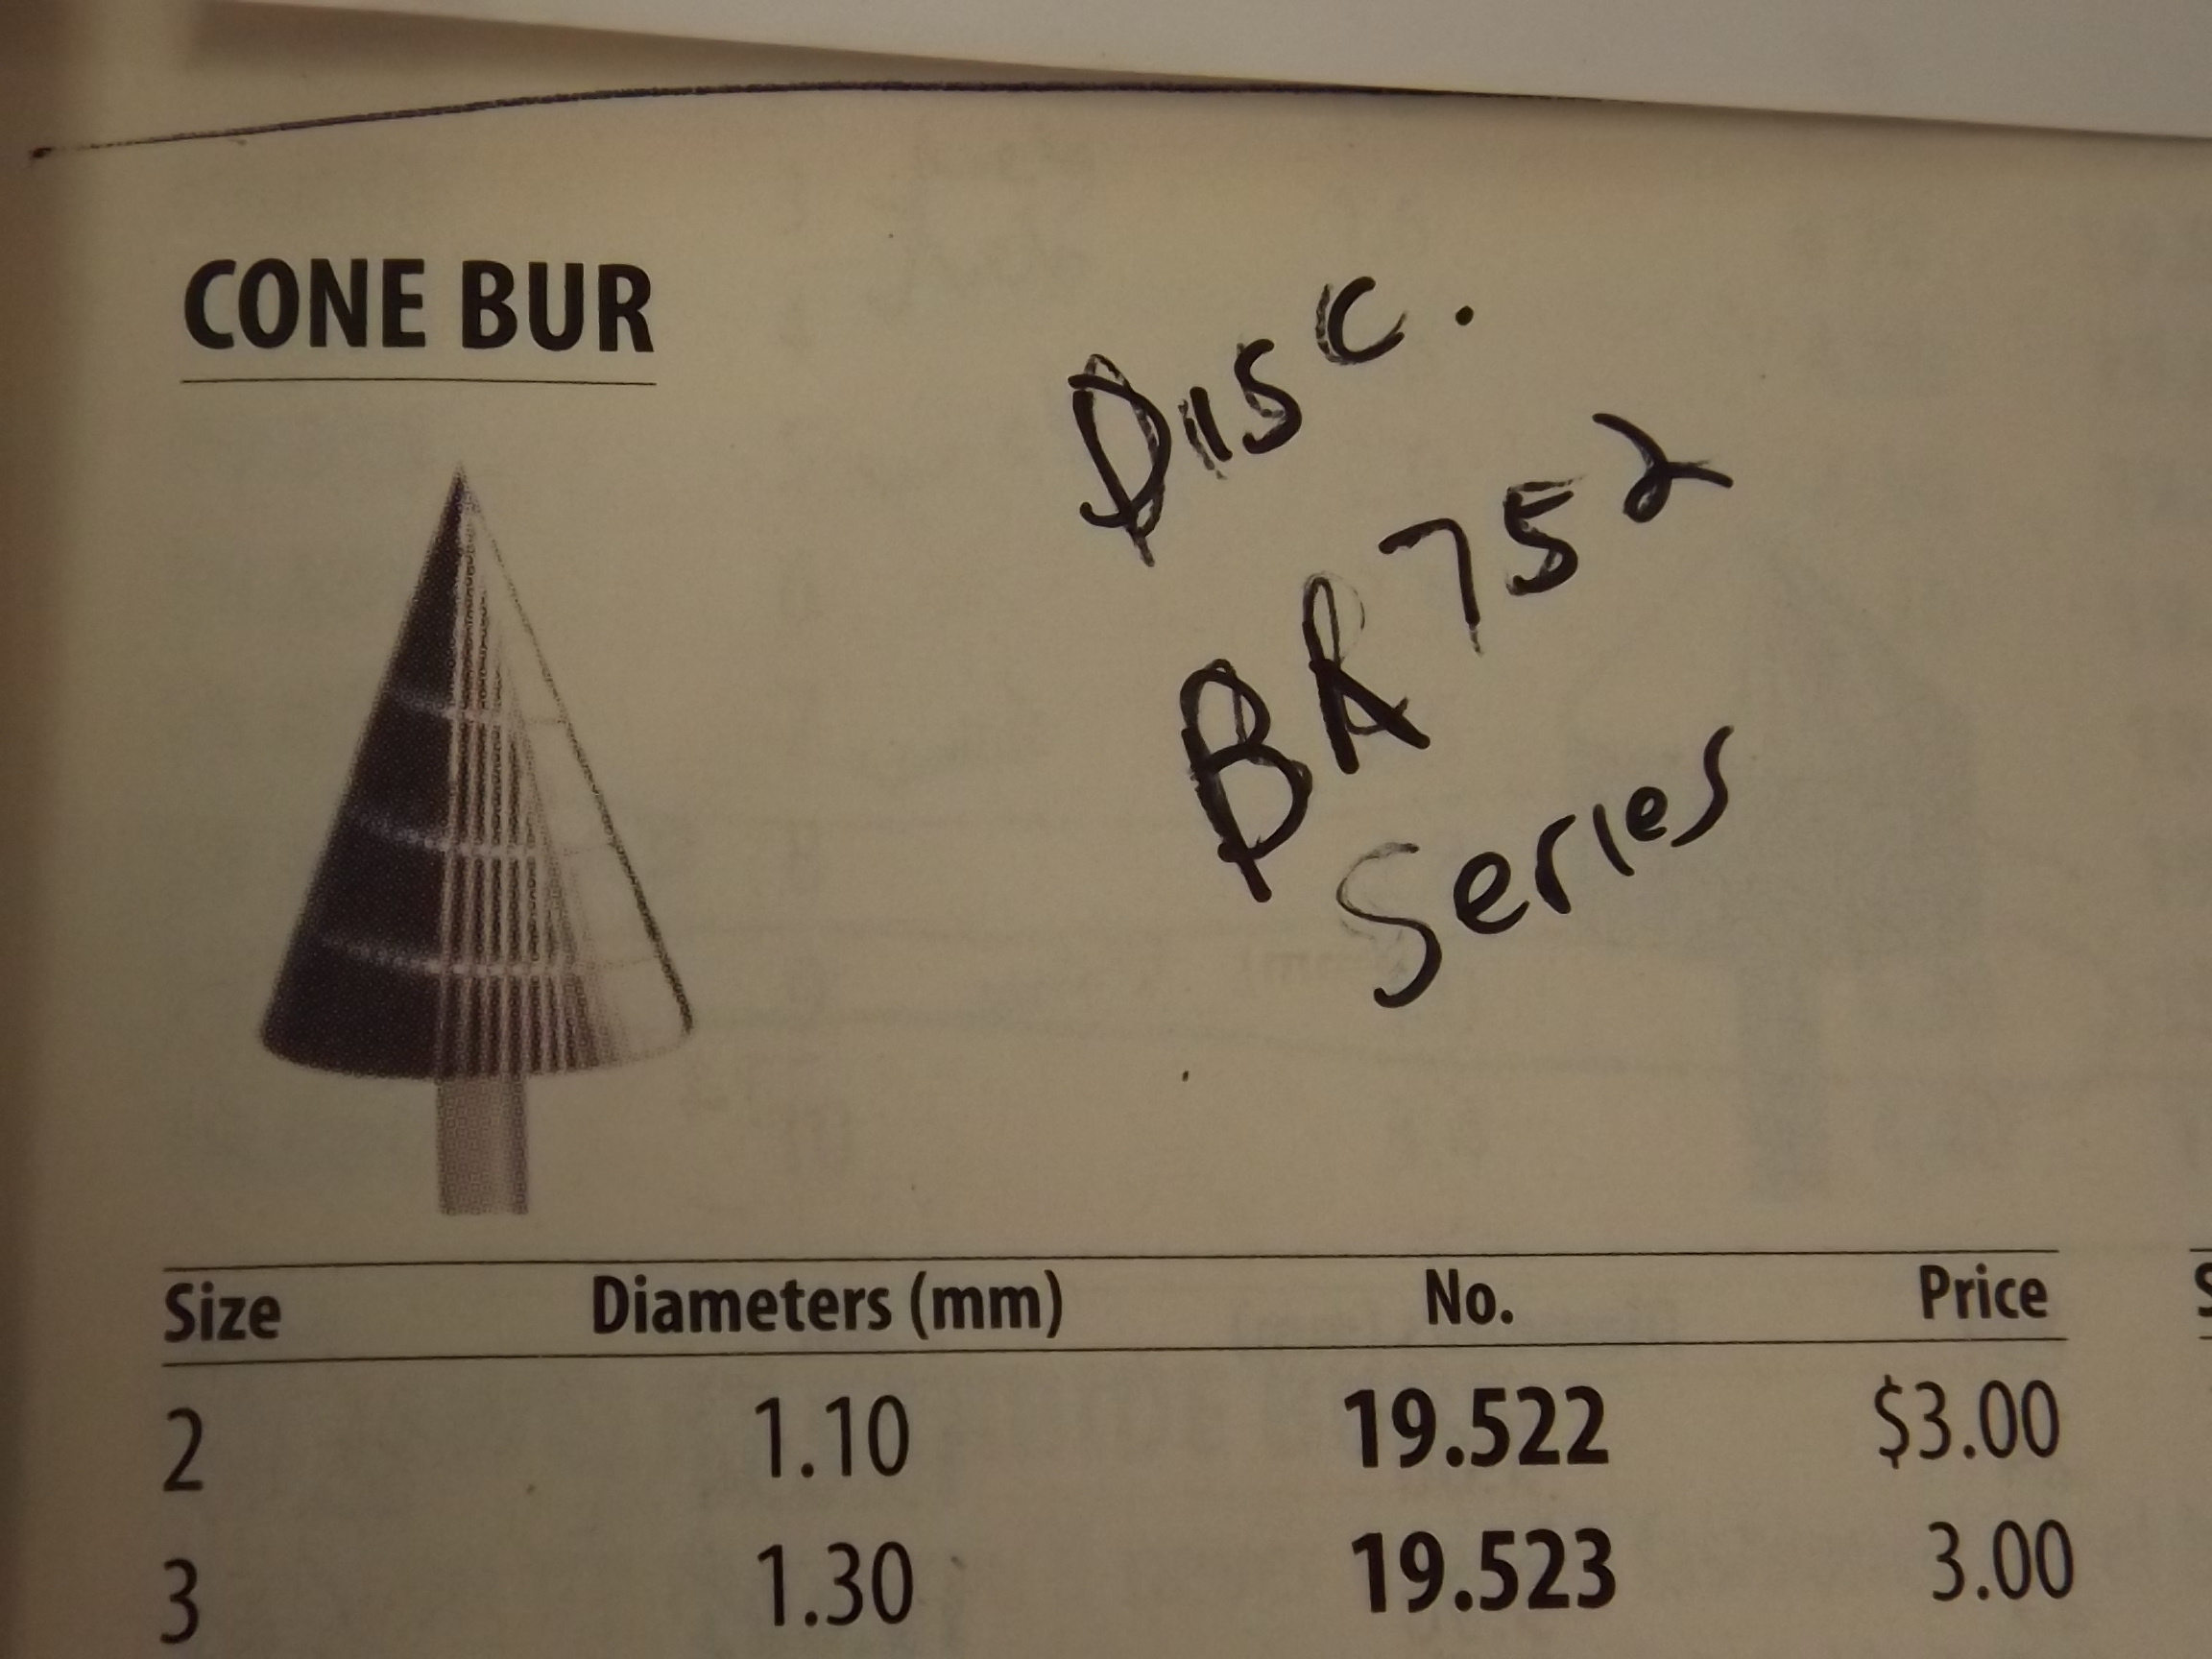 BR752/20 HI-Speed Burs-Cone-while supplies last- Grobet # 19.540